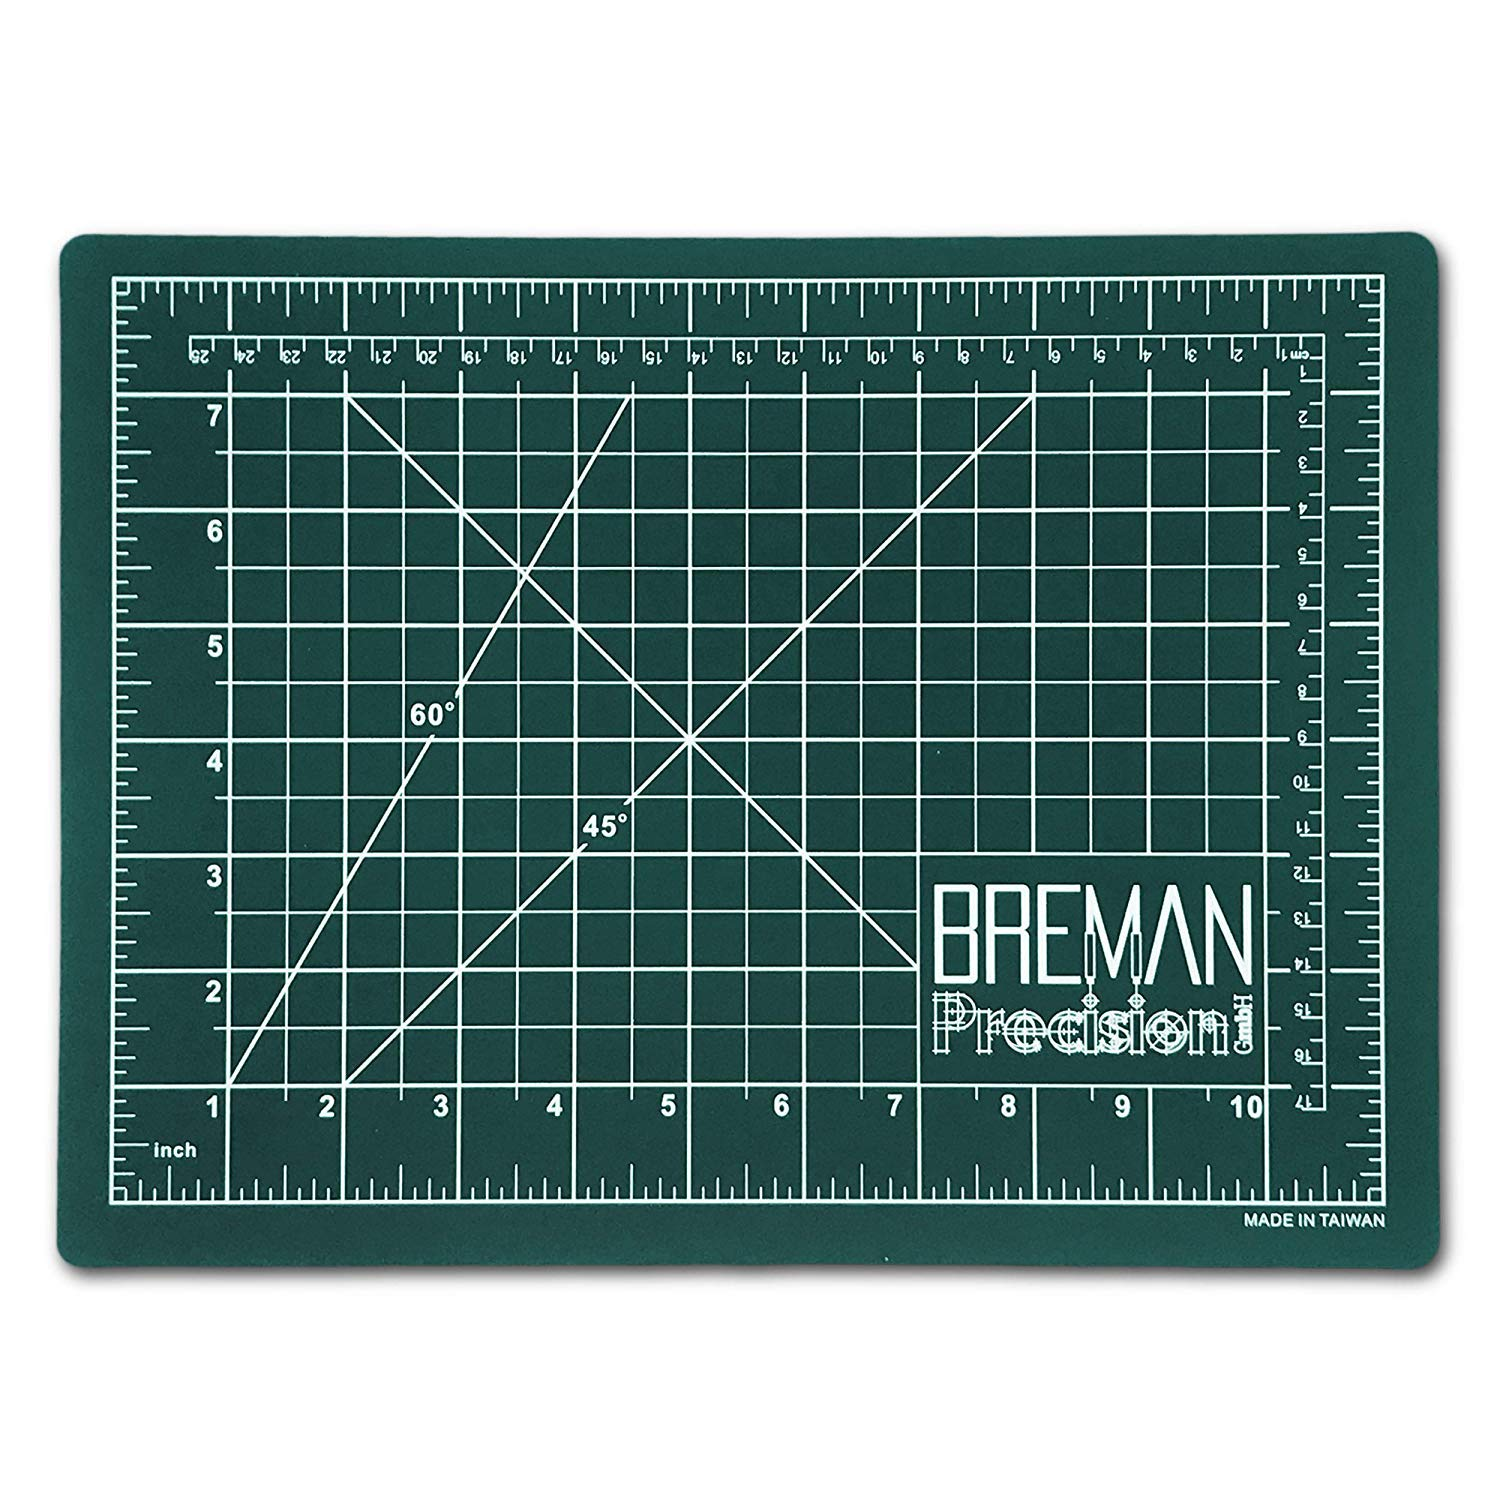 Breman Precision Self Healing Cutting Mat | Sewing Craft Quilting Fabric Rotary Cutting Mat for Crafters Hobbyists Artists | 2-Sided 5-Ply PVC Craft Mat with Grid Lines, Black/Green Sides (A1,24x36in)